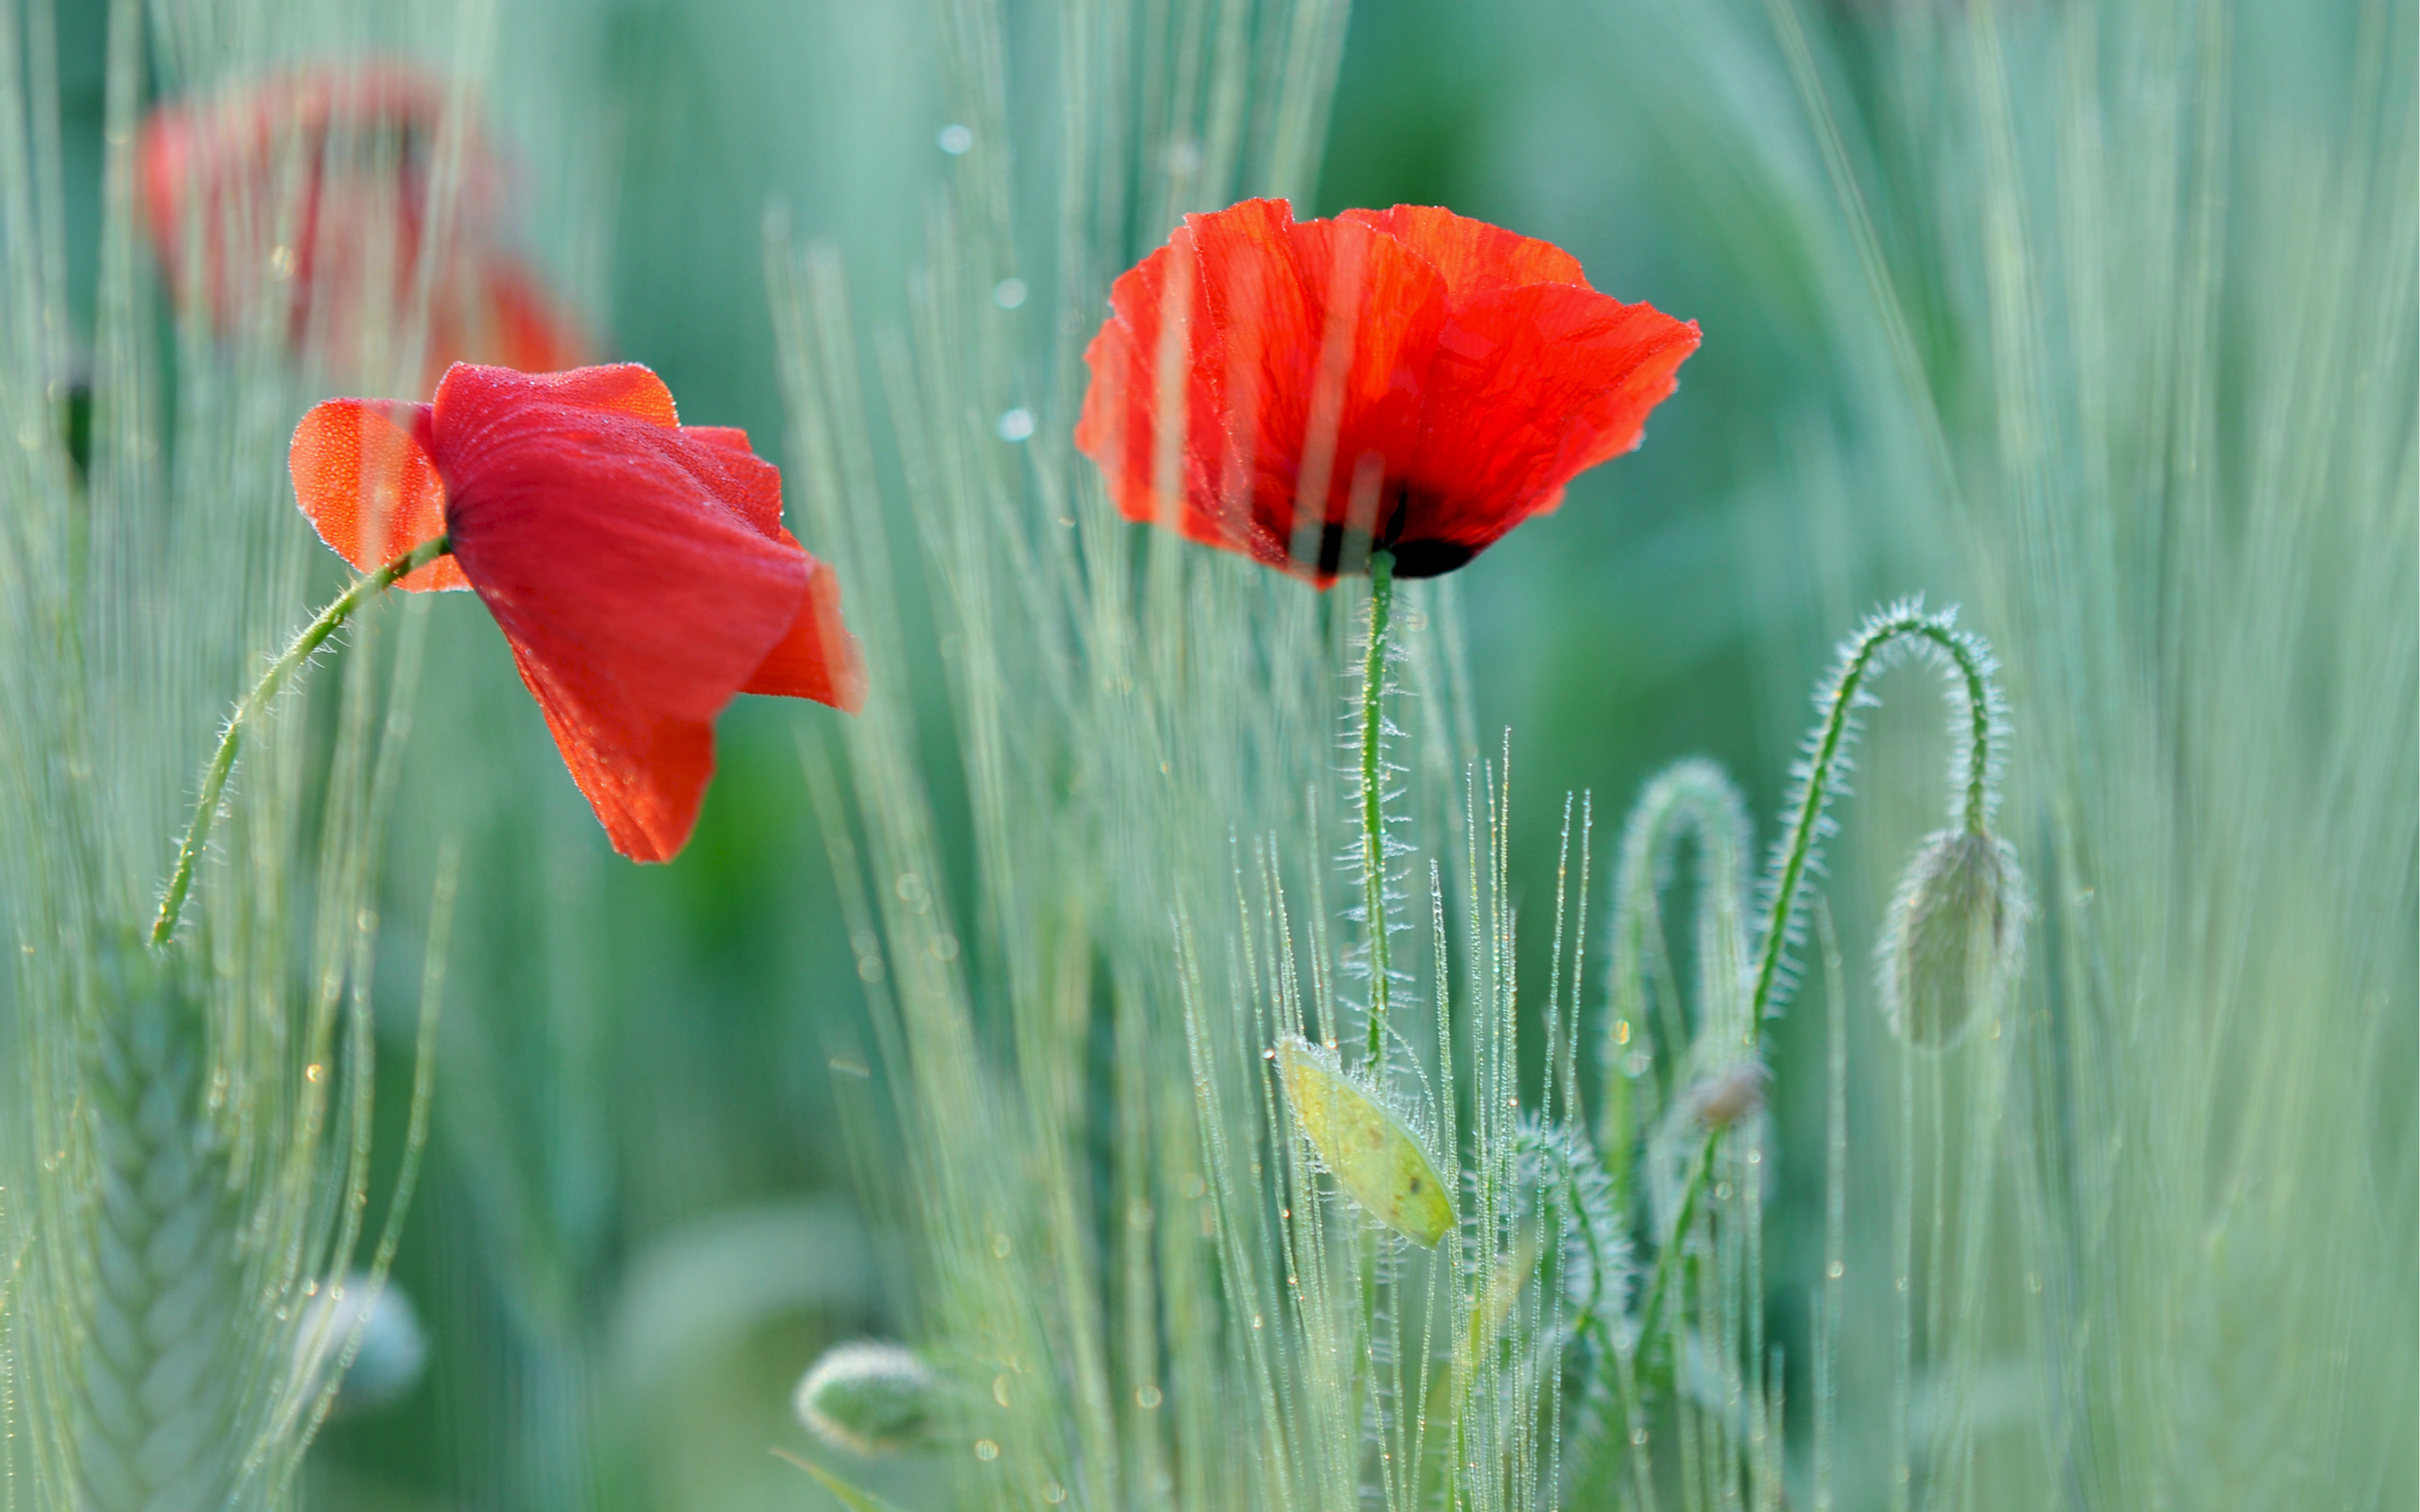 Poppy Wallpaper For Iphone Poppy Full Hd Wallpaper And Background Image 2560x1600